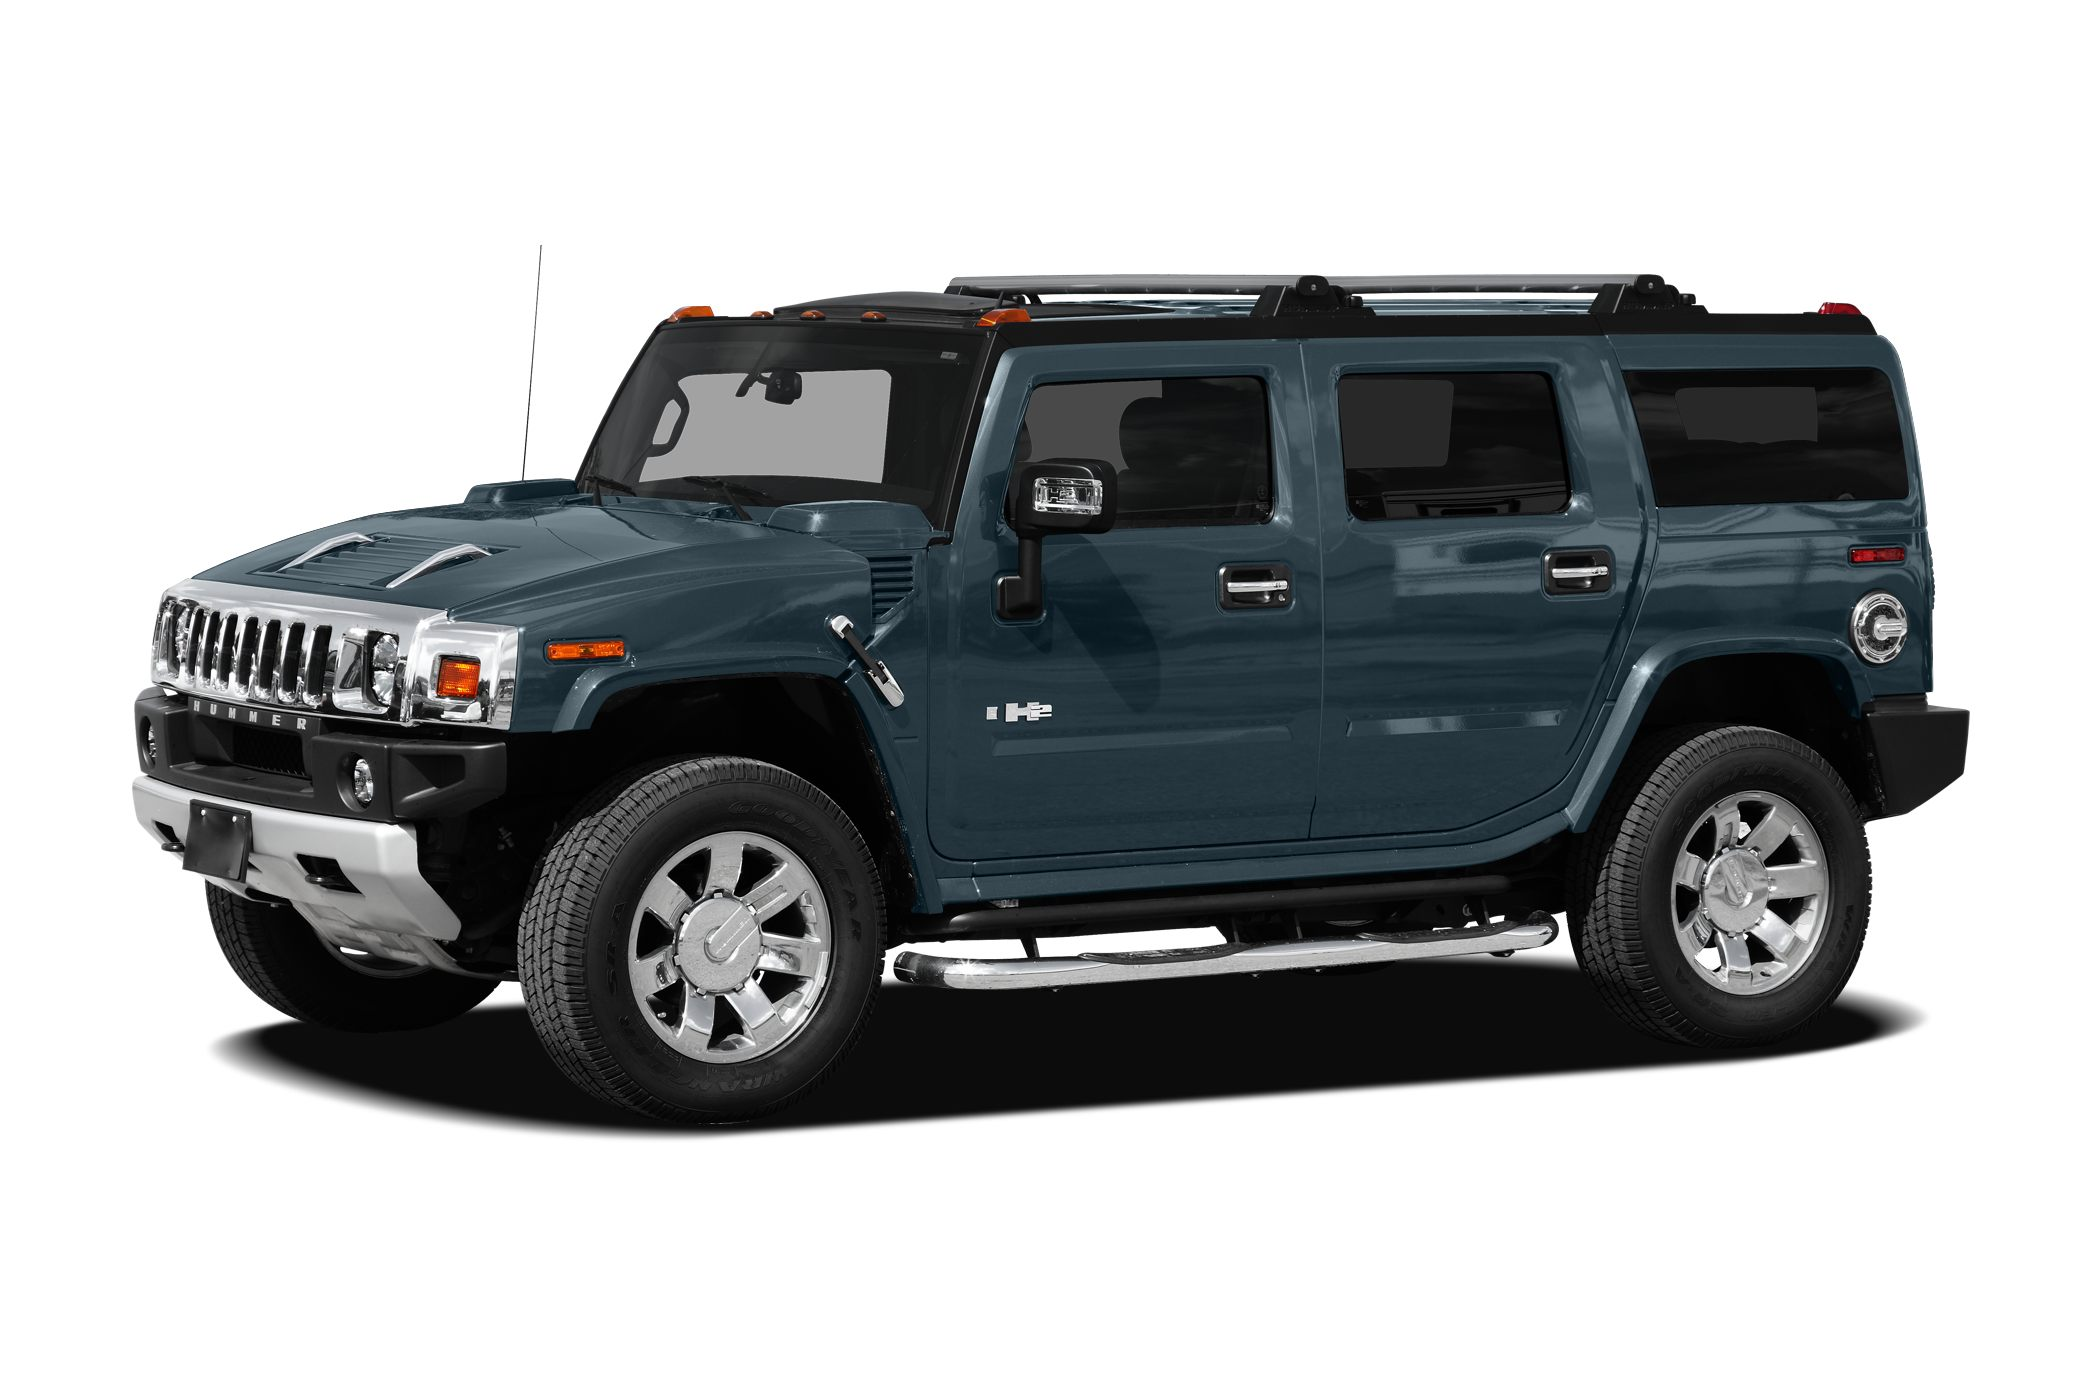 2008 HUMMER H2 SUV Specs Safety Rating & MPG CarsDirect